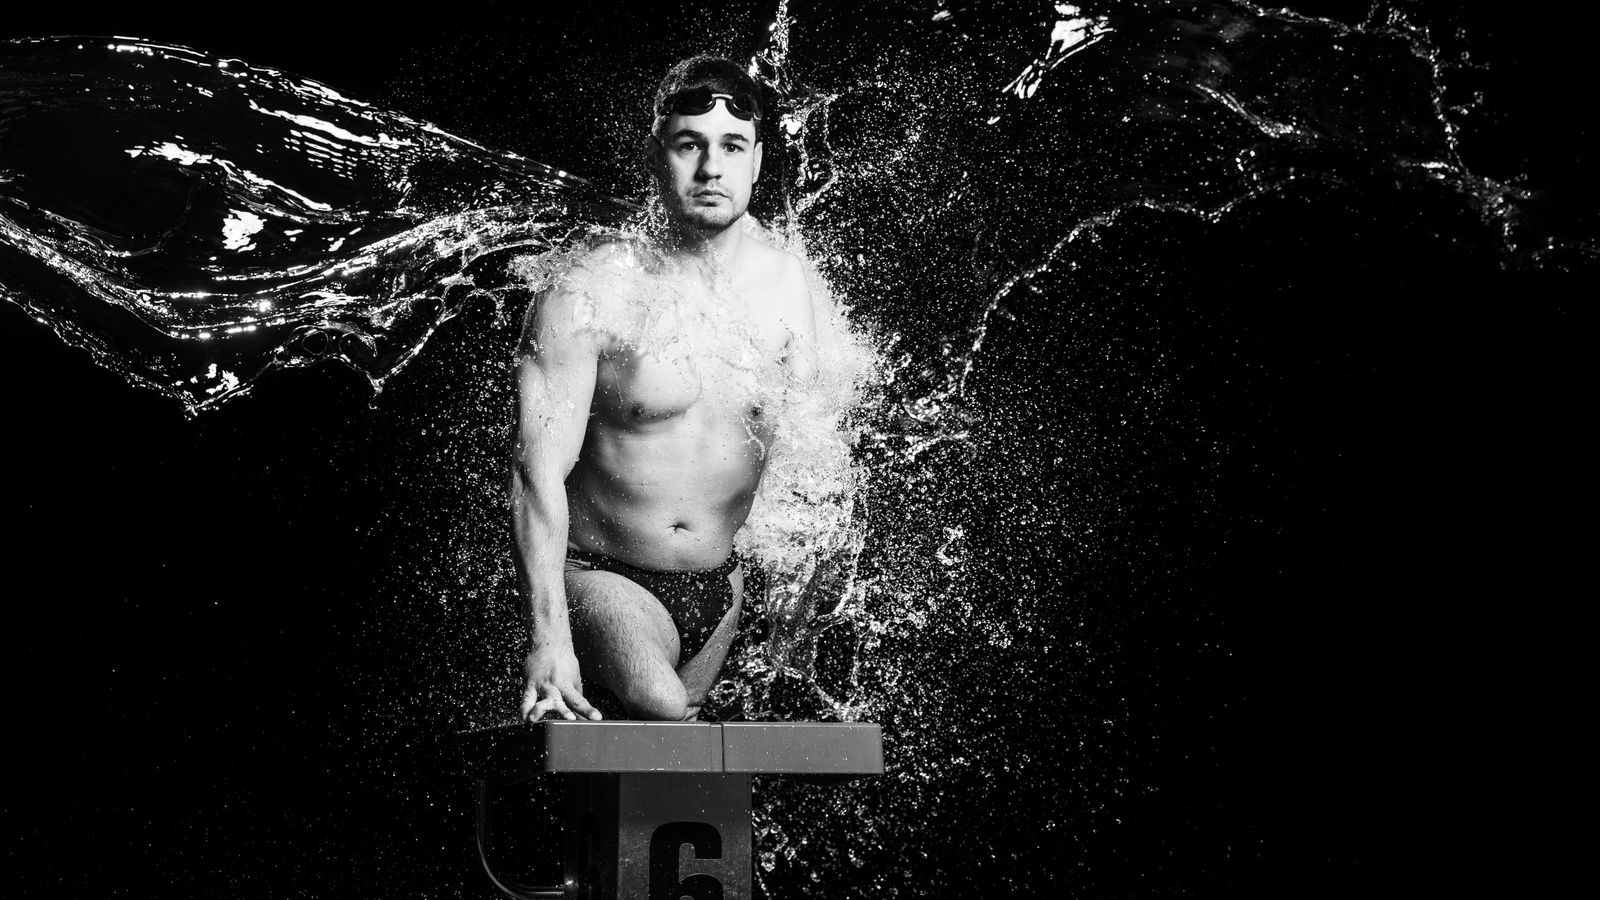 Slovenian swimmer Darko Duric broke the world record for the 50m Butterfly S4 in 2012. Sports ...